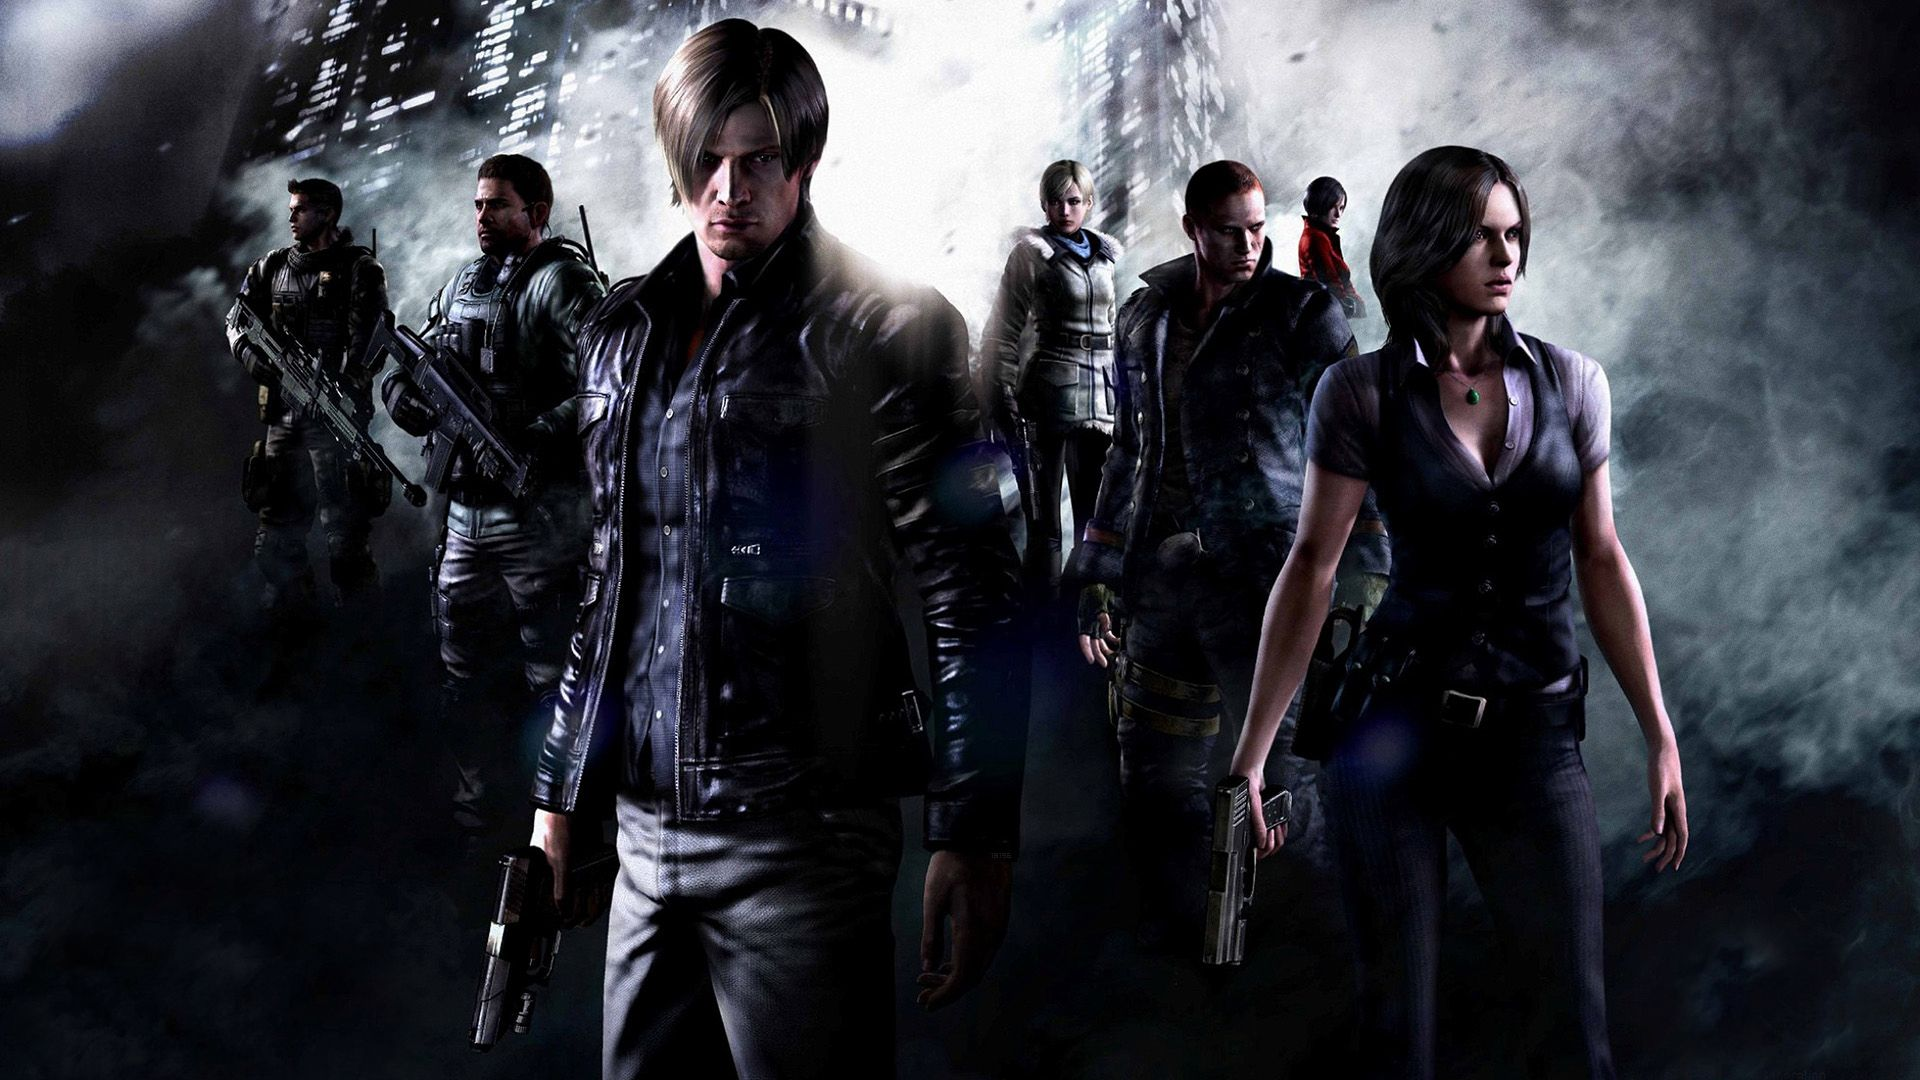 Hd Re 6 Wallpaper Background Free Download 135783 With Images